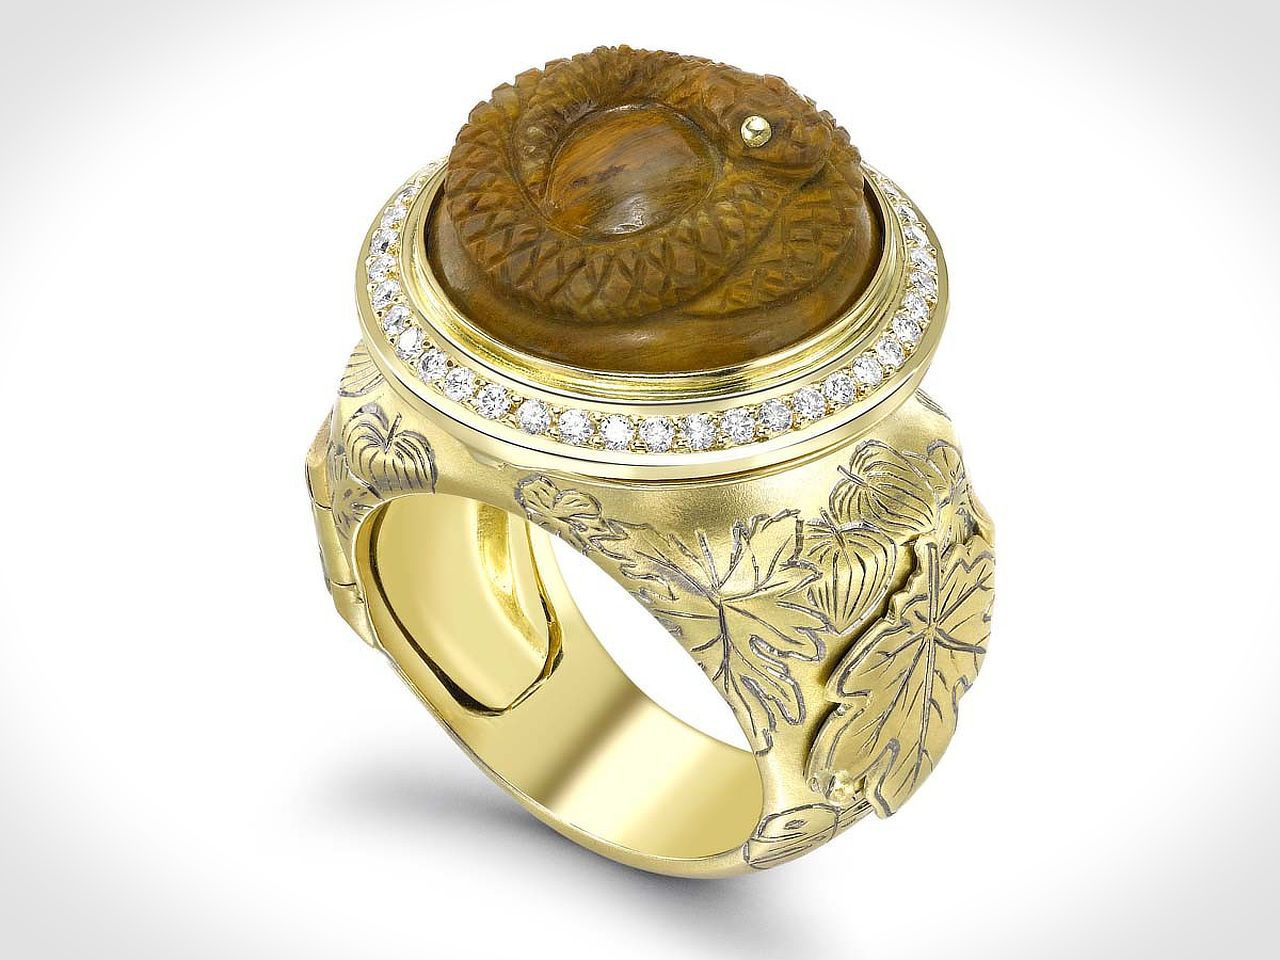 apple-of-temptation-adam-and-eve-ring-001